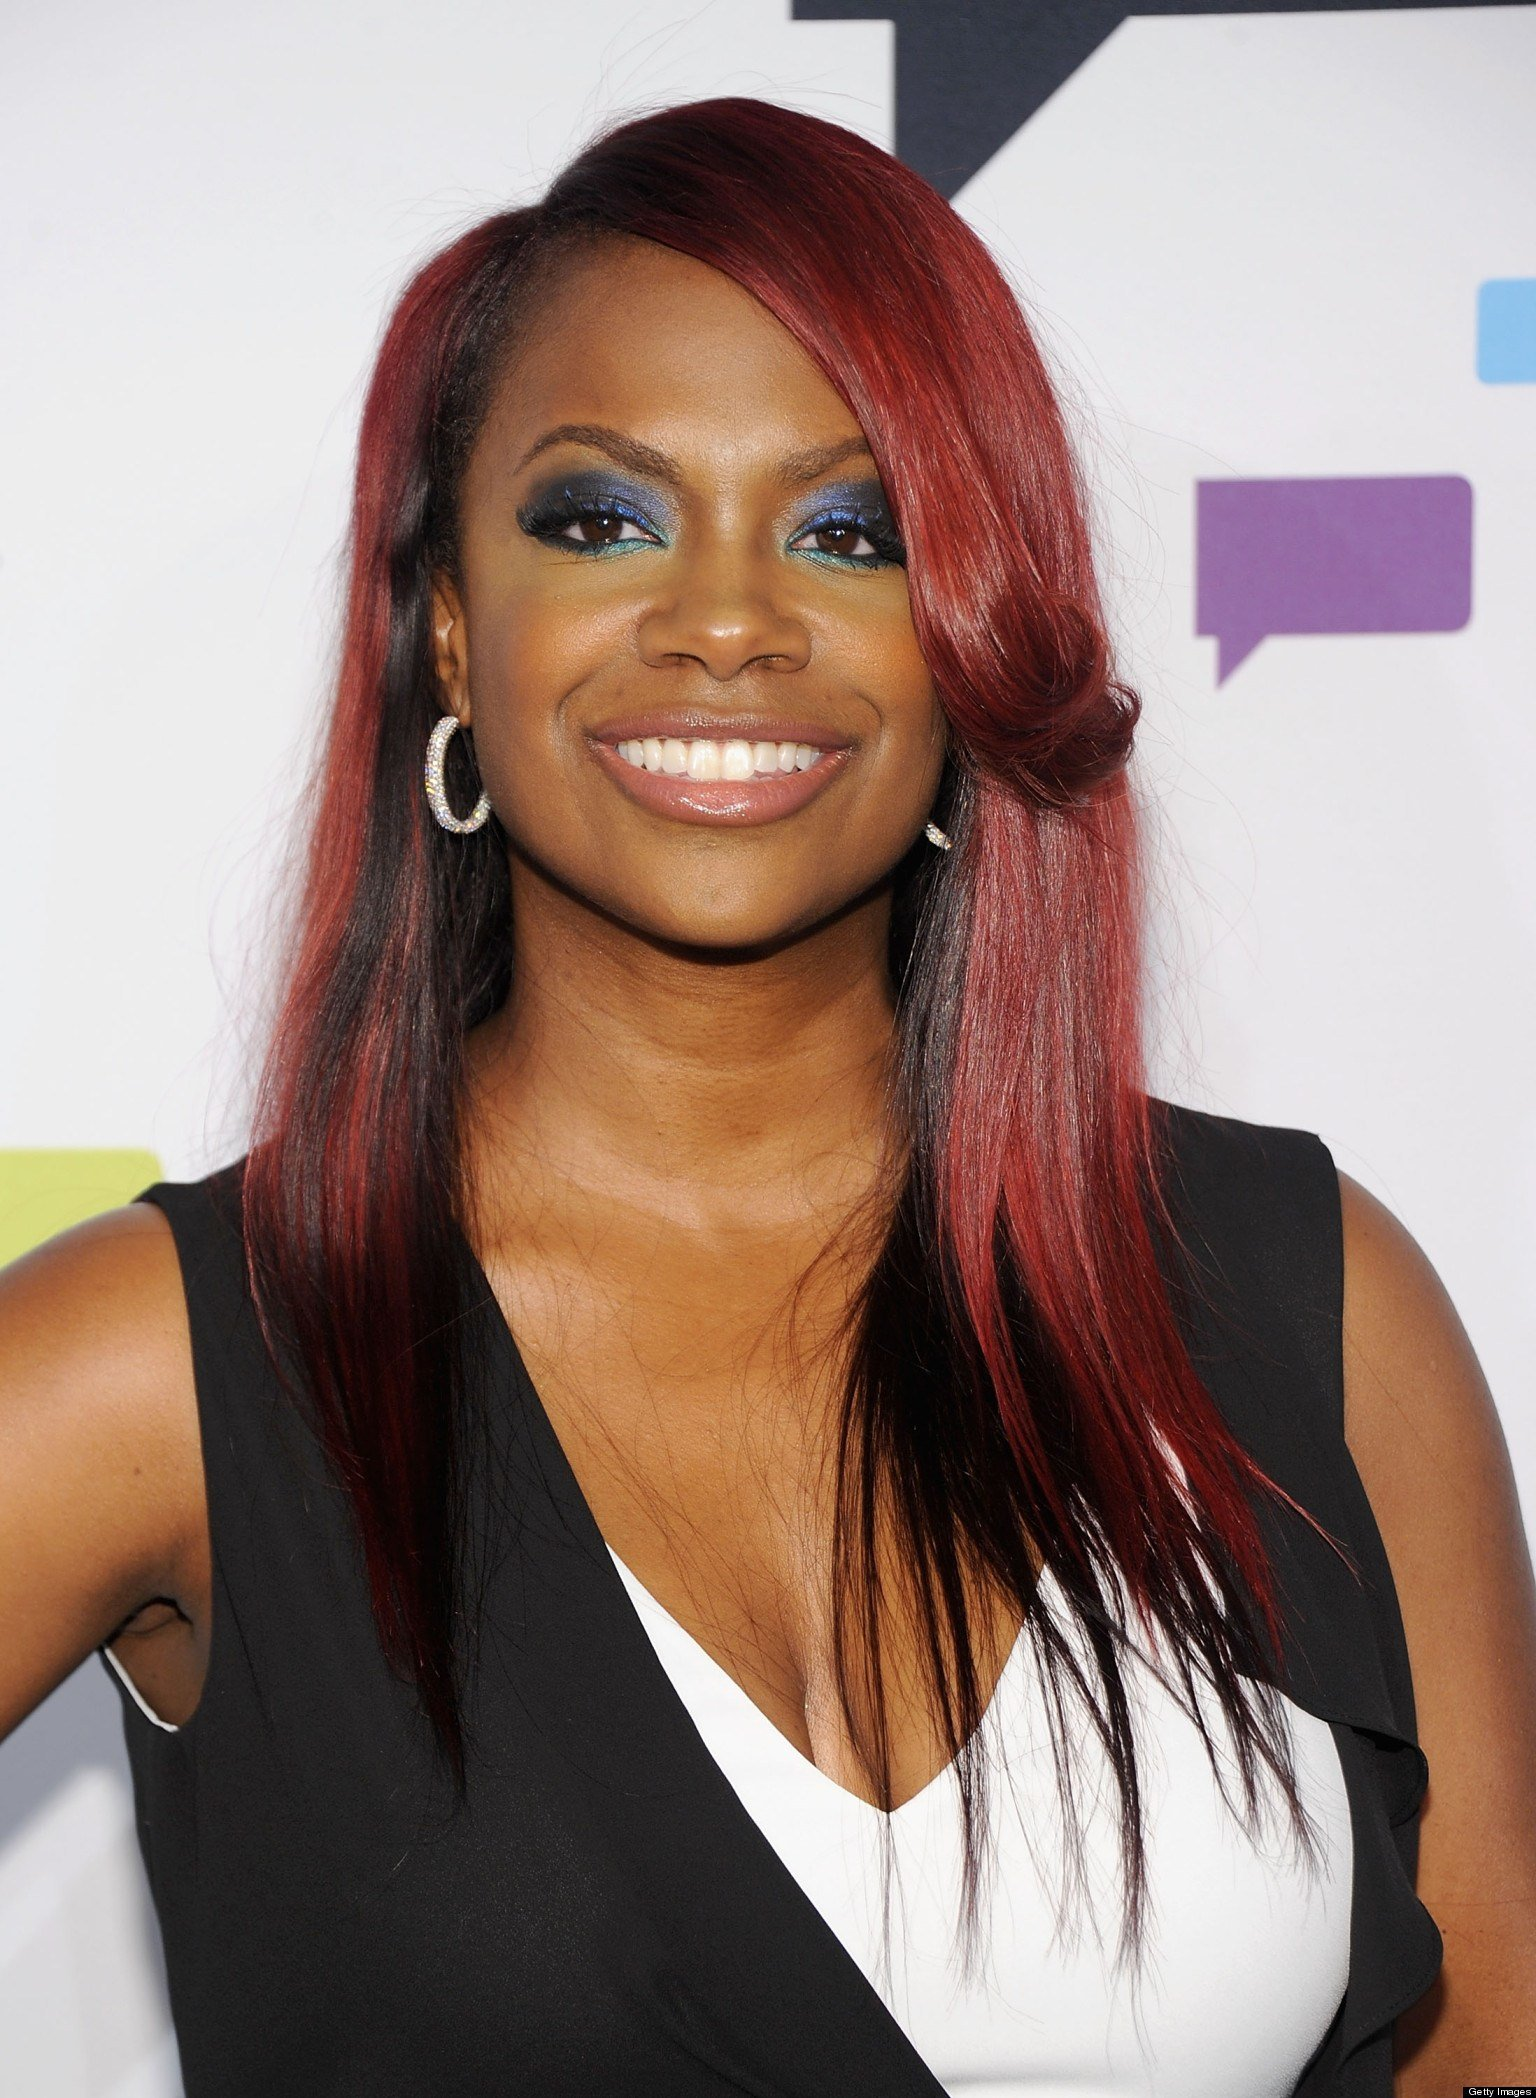 The Best Kandi Burruss Addresses Pre Housewives Haters Making Pictures